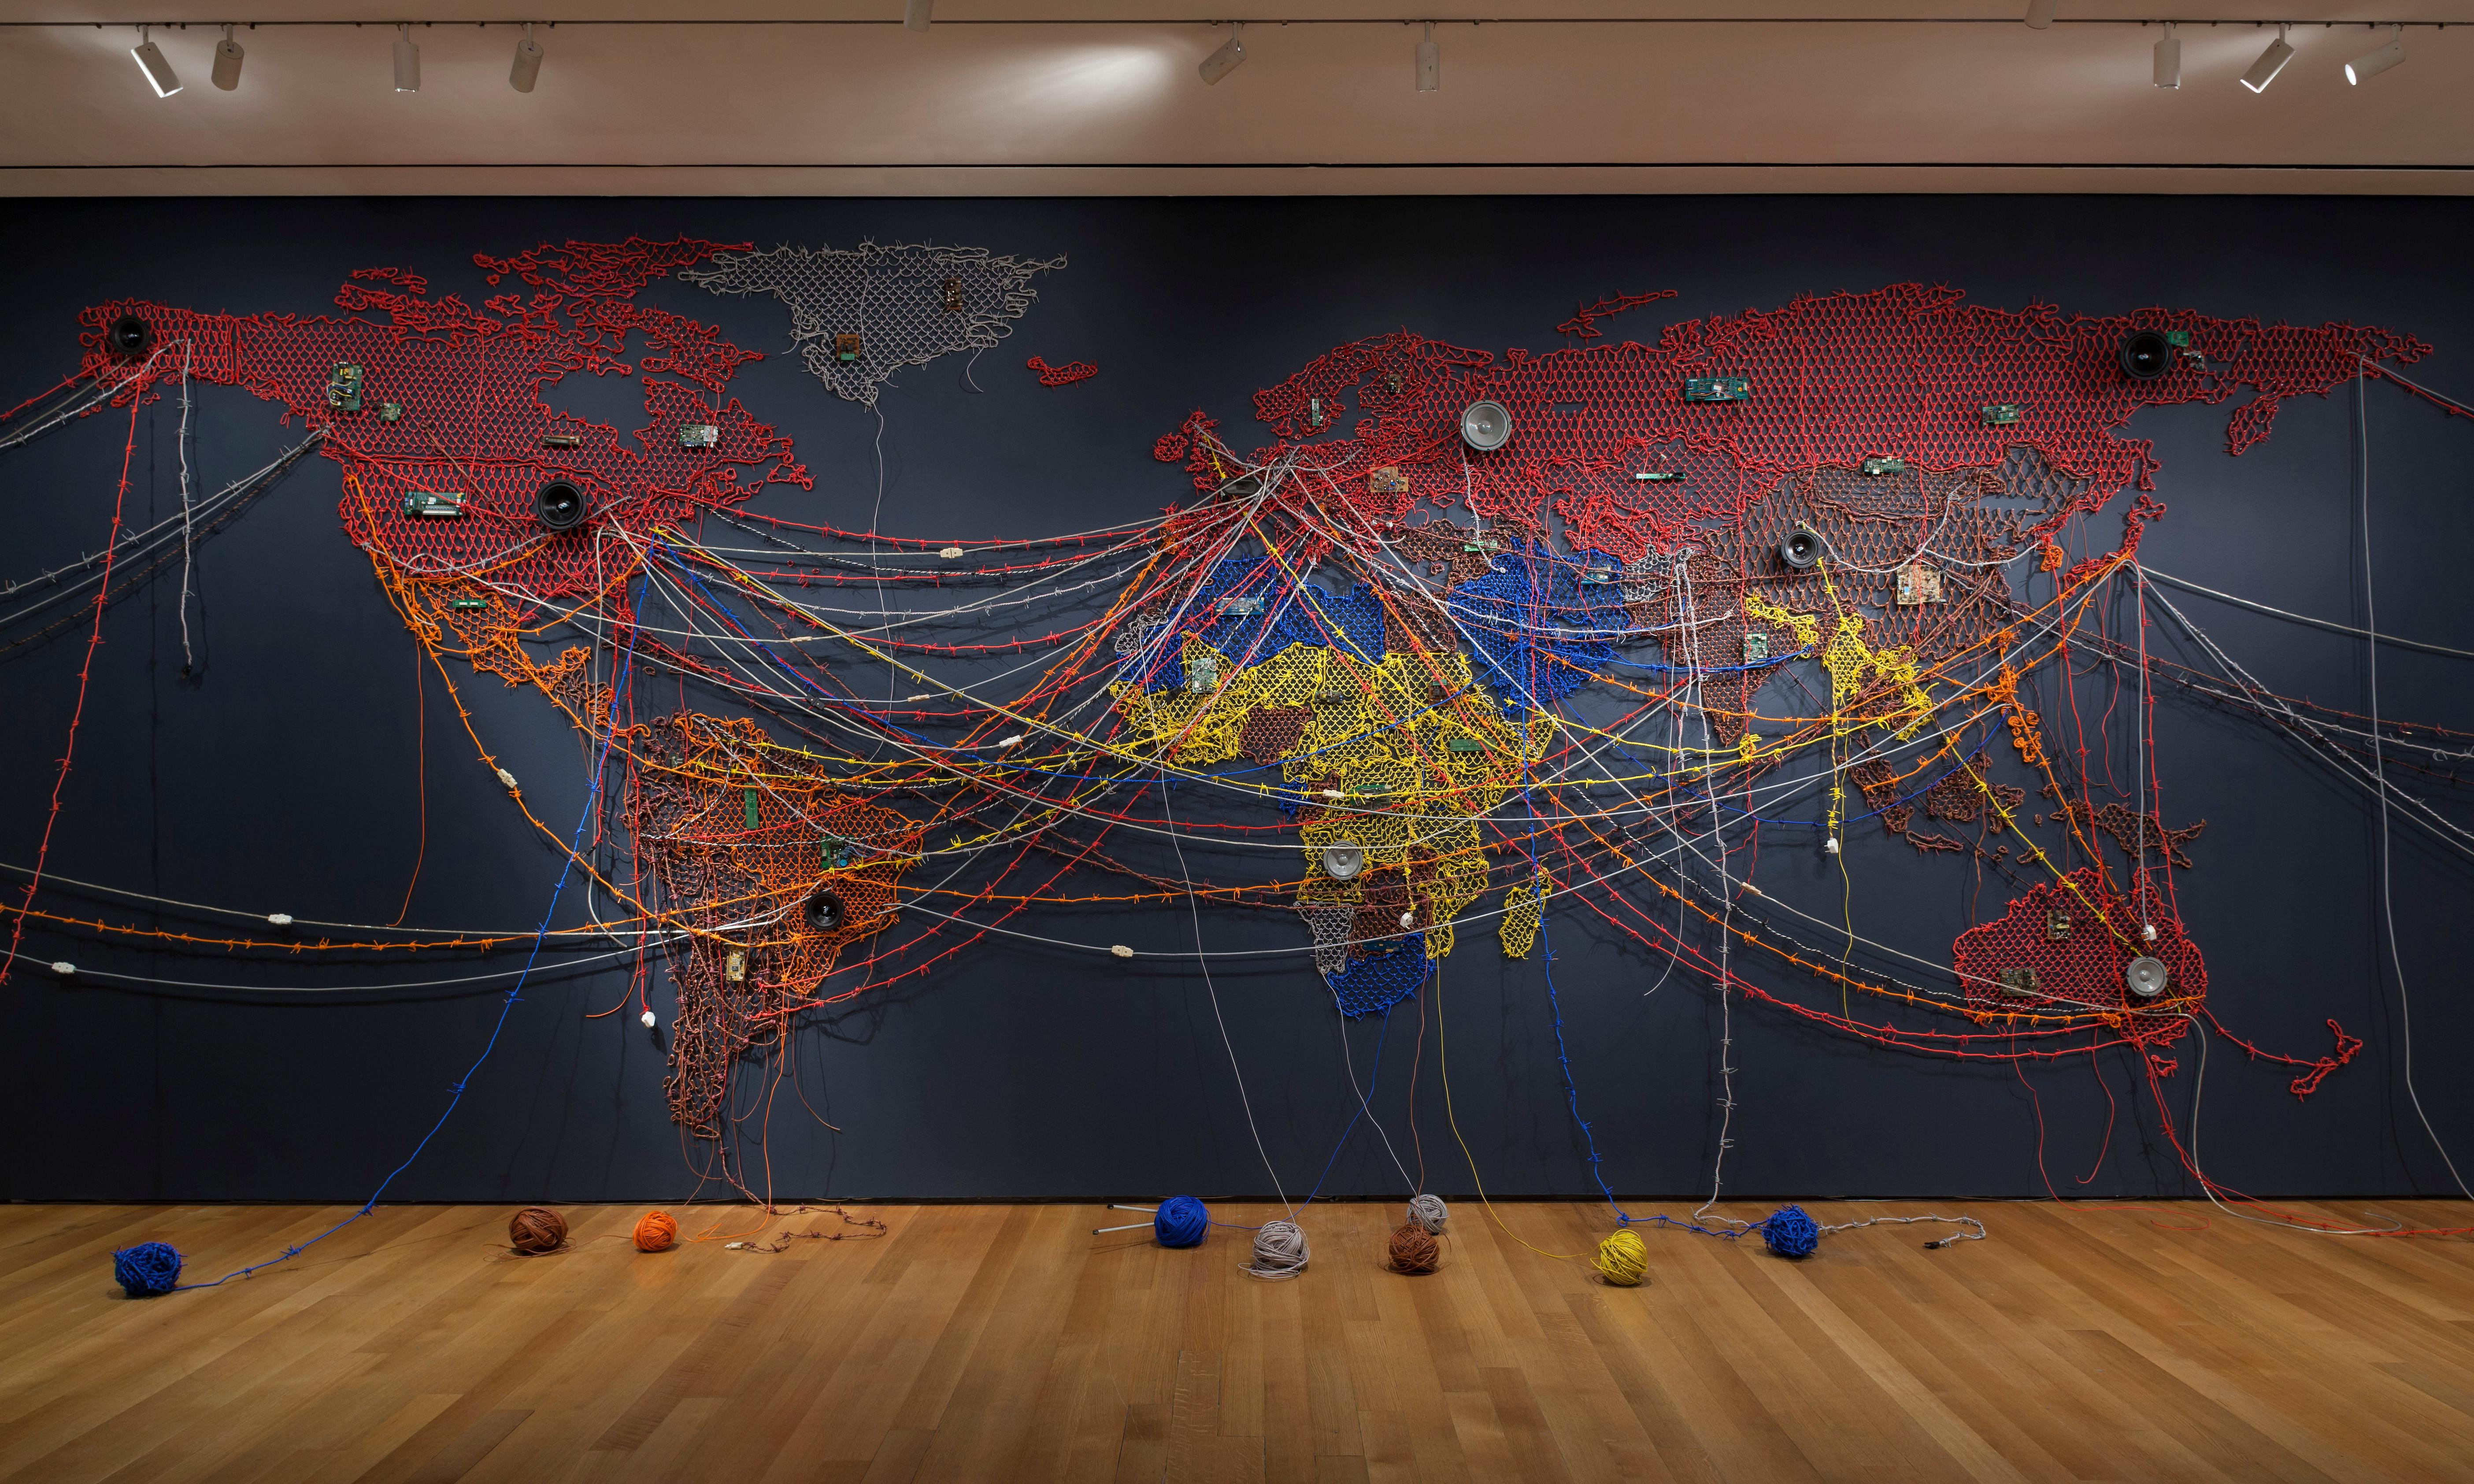 'When home won't let you stay': artwork addressing global migration